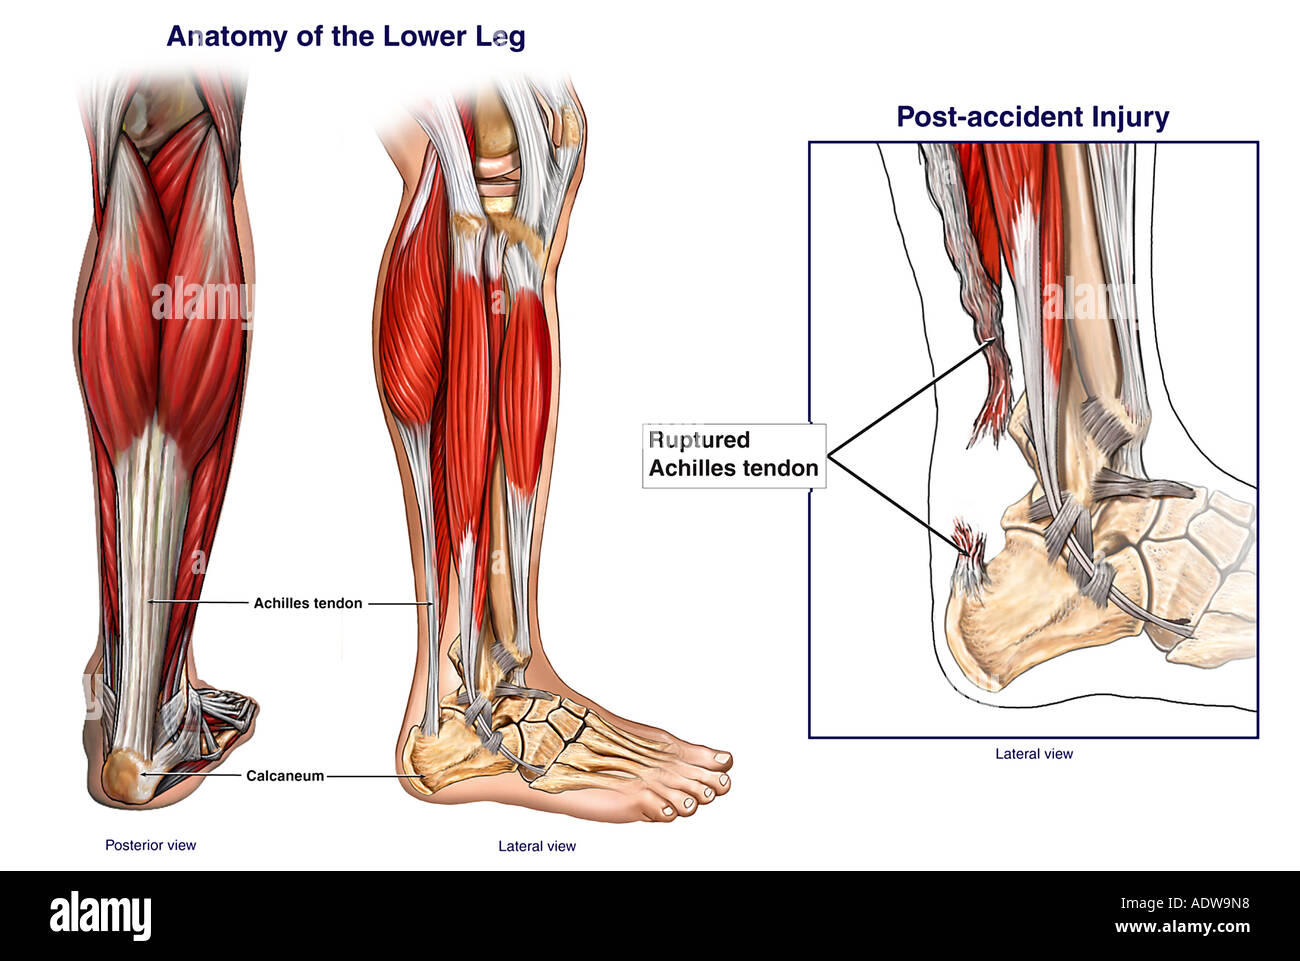 Normal Anatomy of the Lower Leg Stock Photo: 7712791 - Alamy